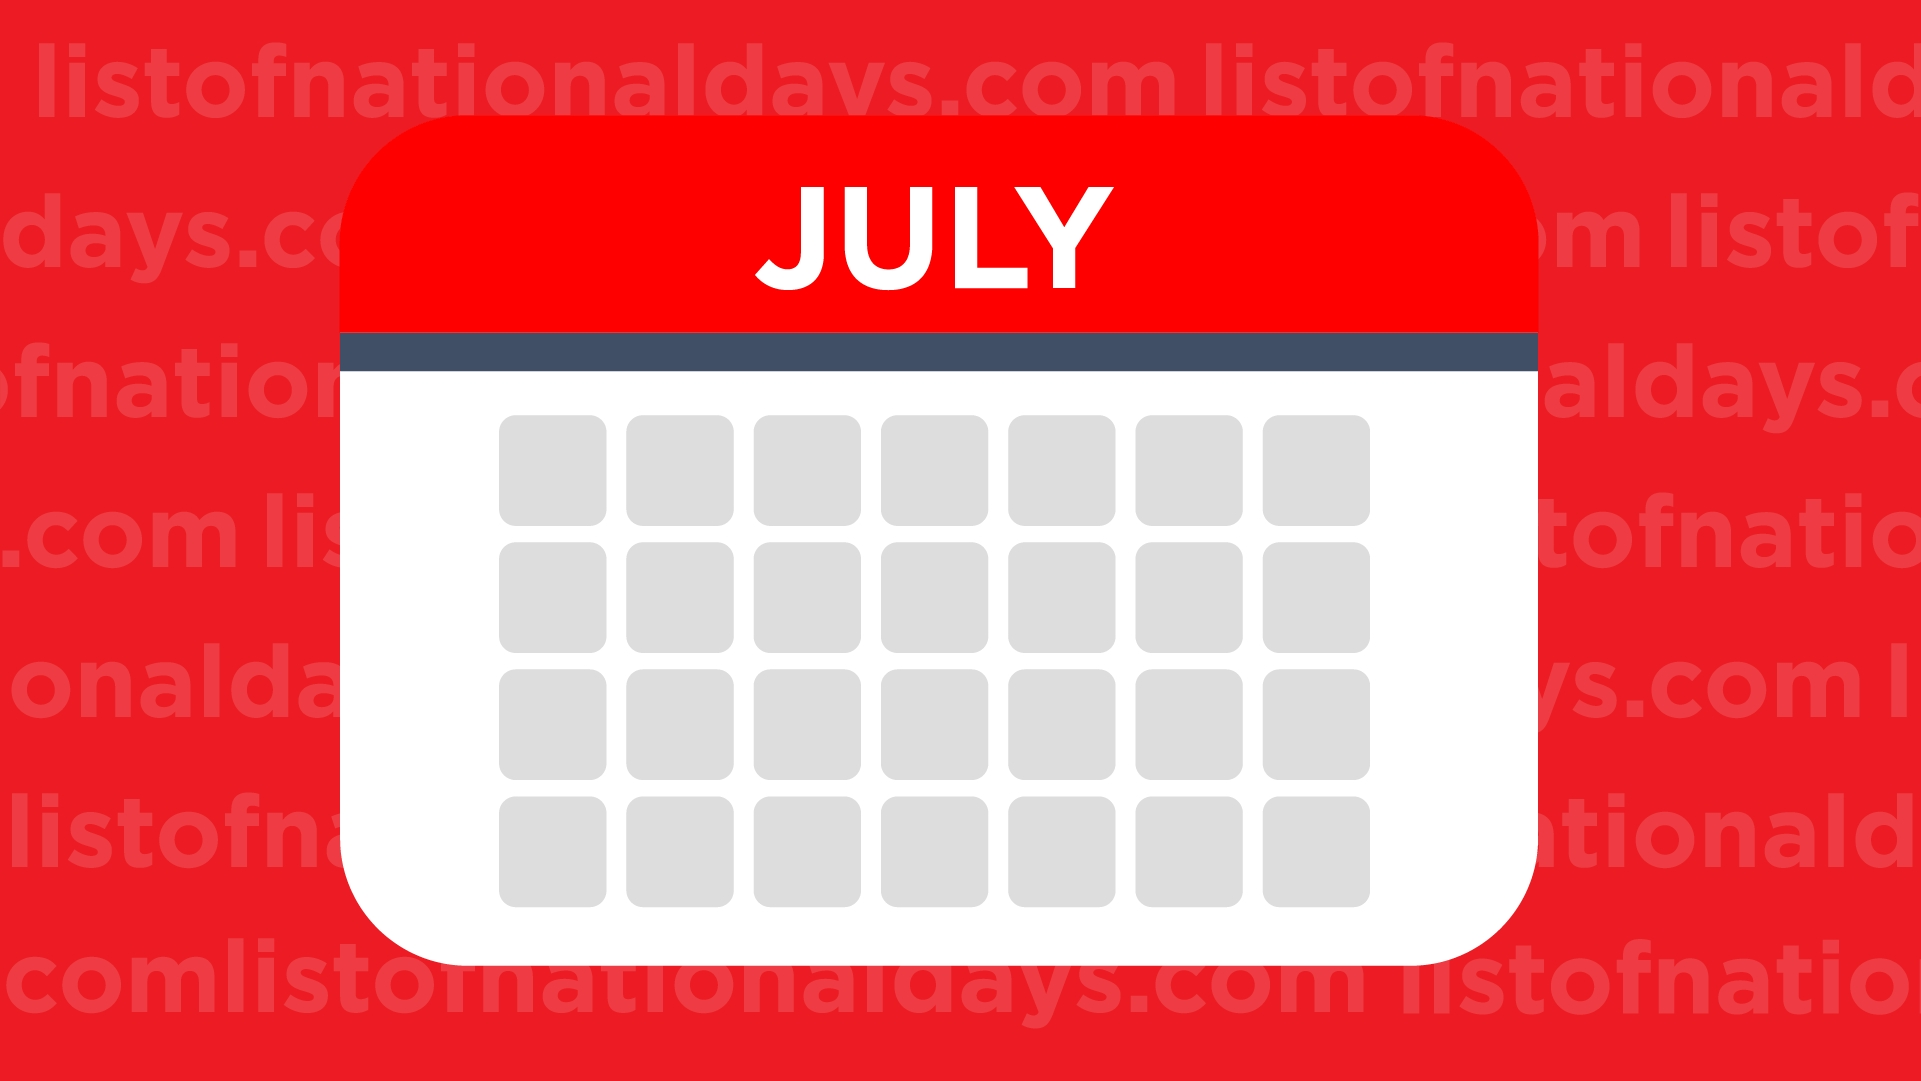 July National Days - List Of National Days with Month Of July National Days